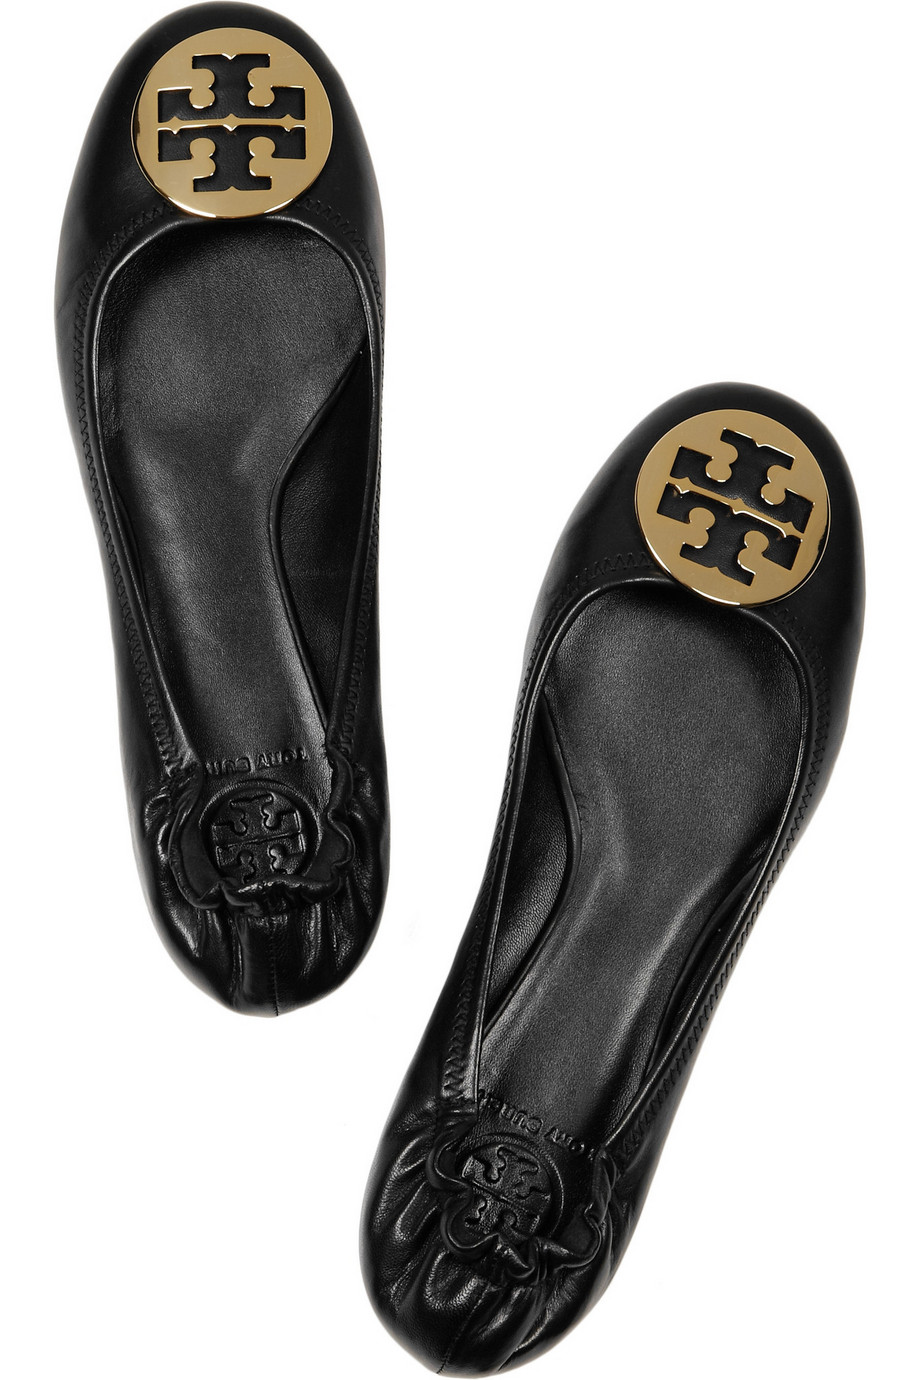 Tory Burch  front